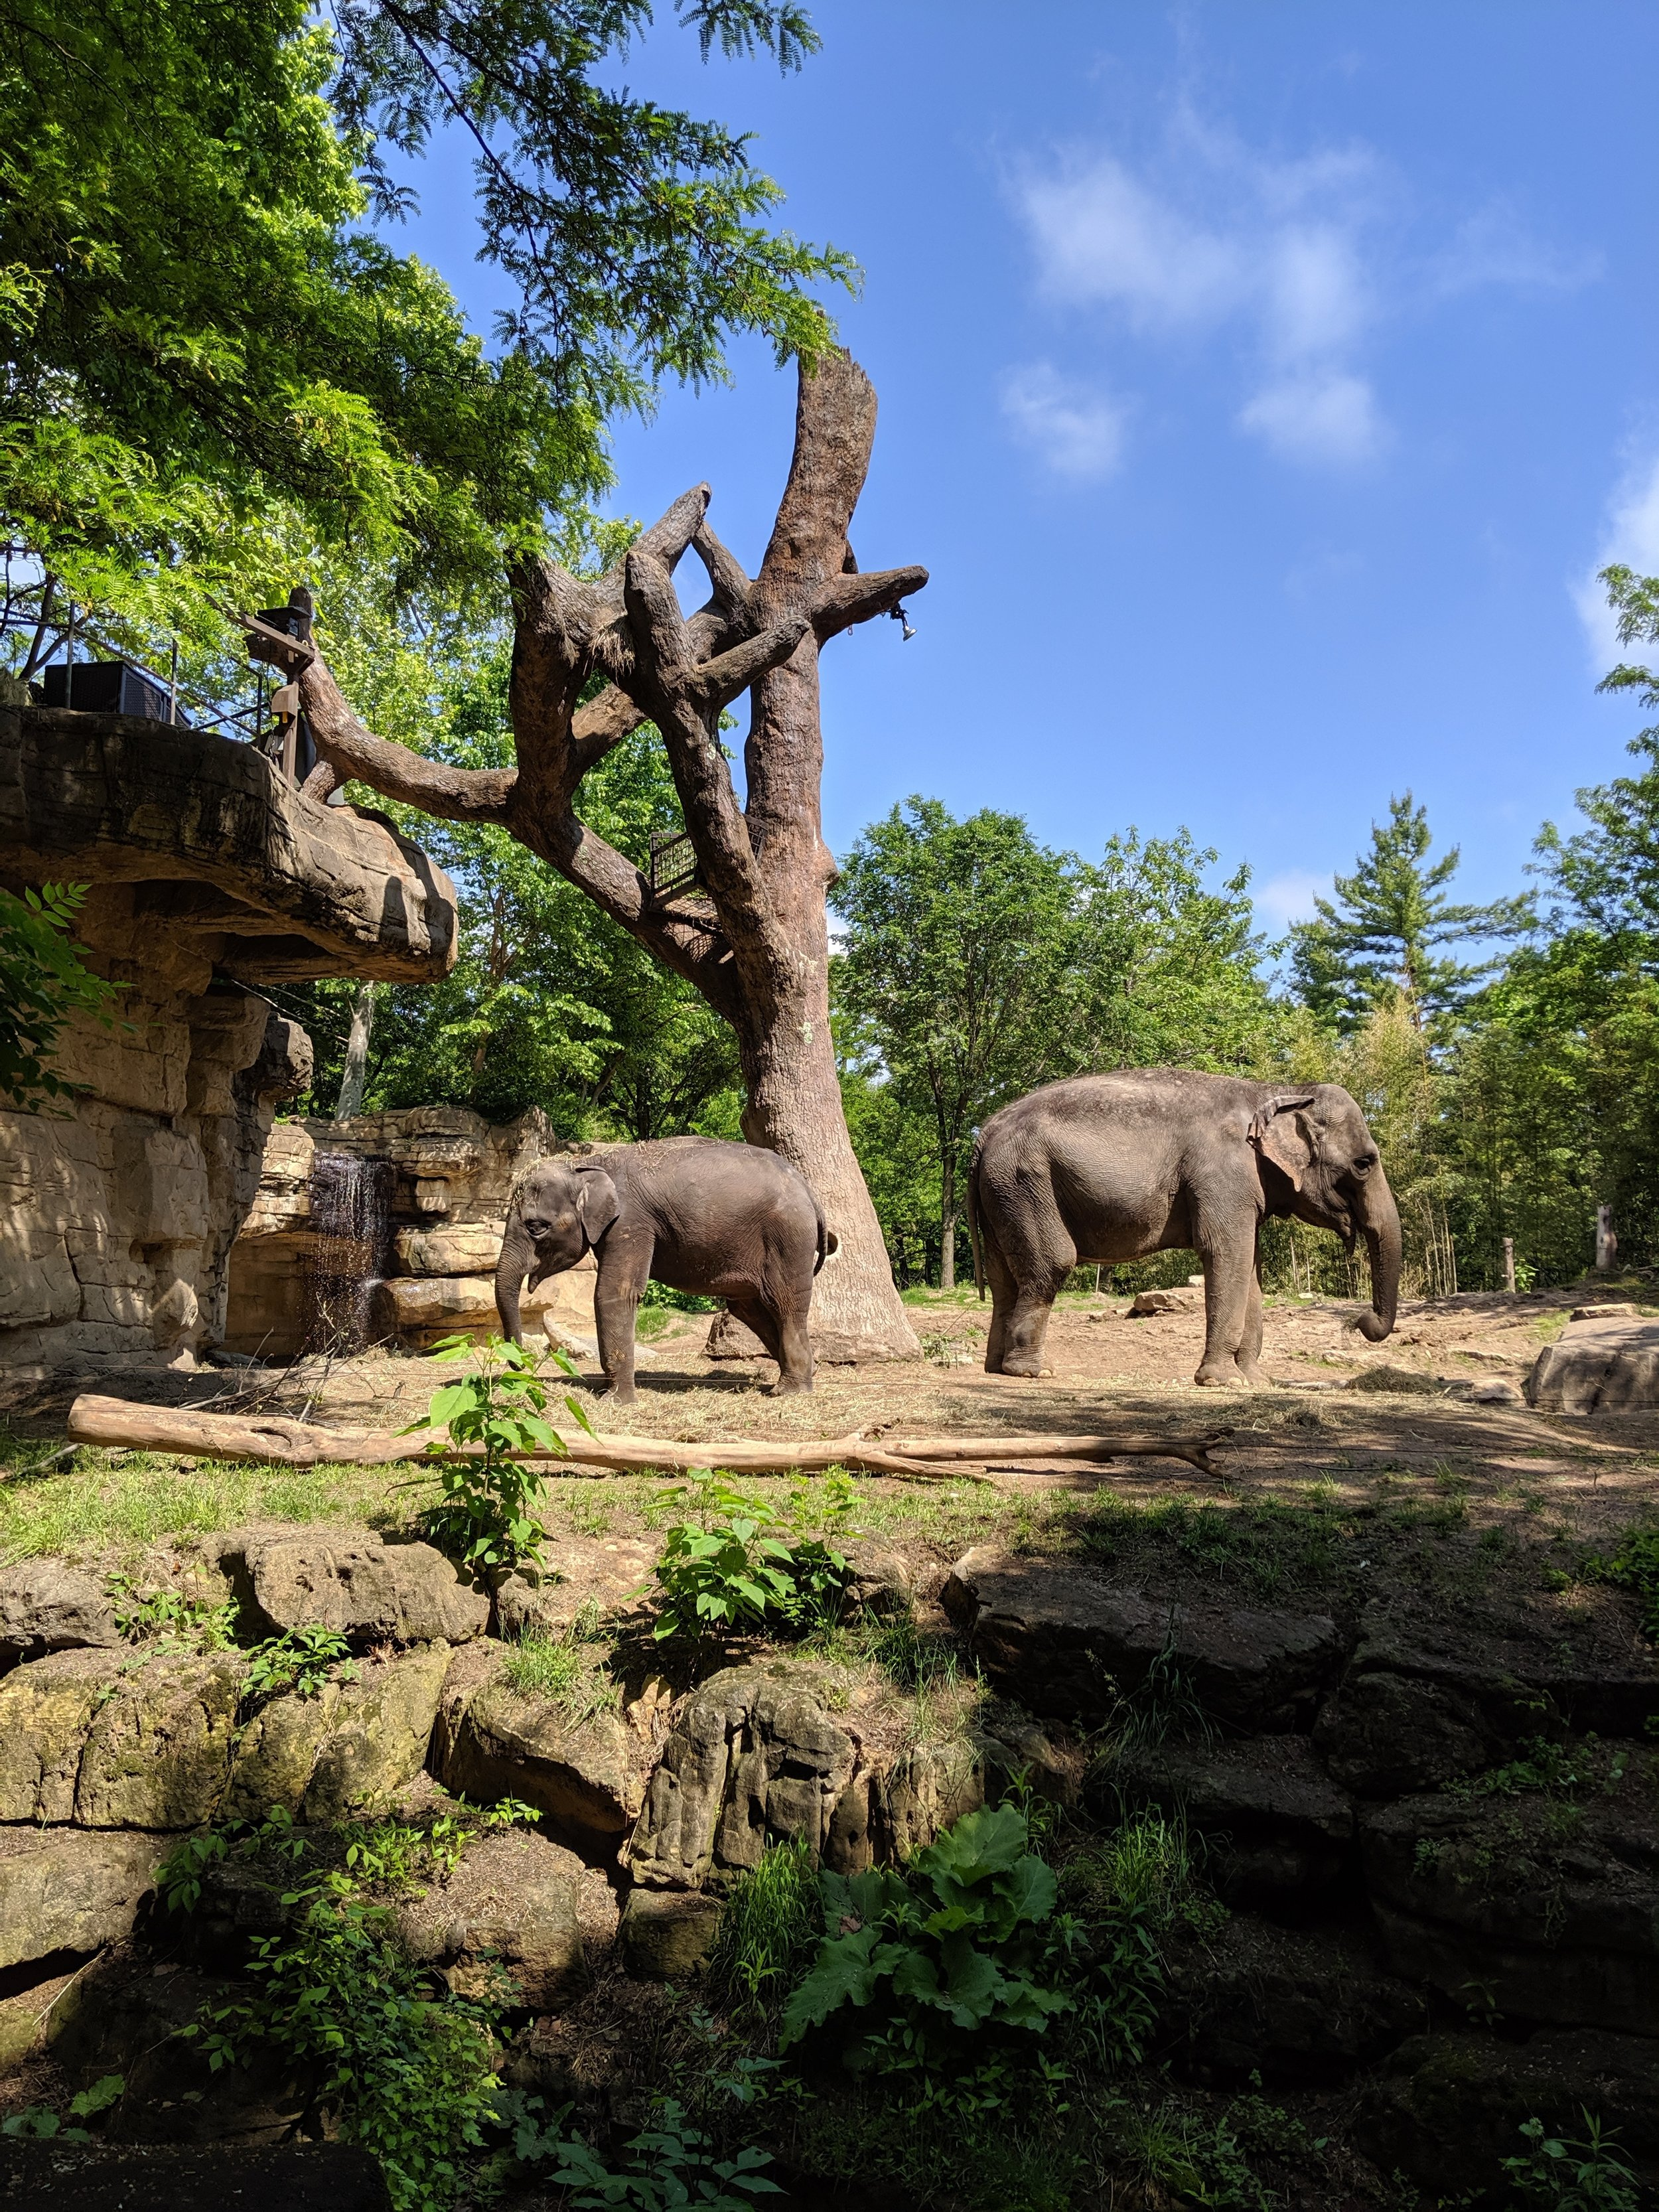 Two of the elephants at the St. Louis Zoo.